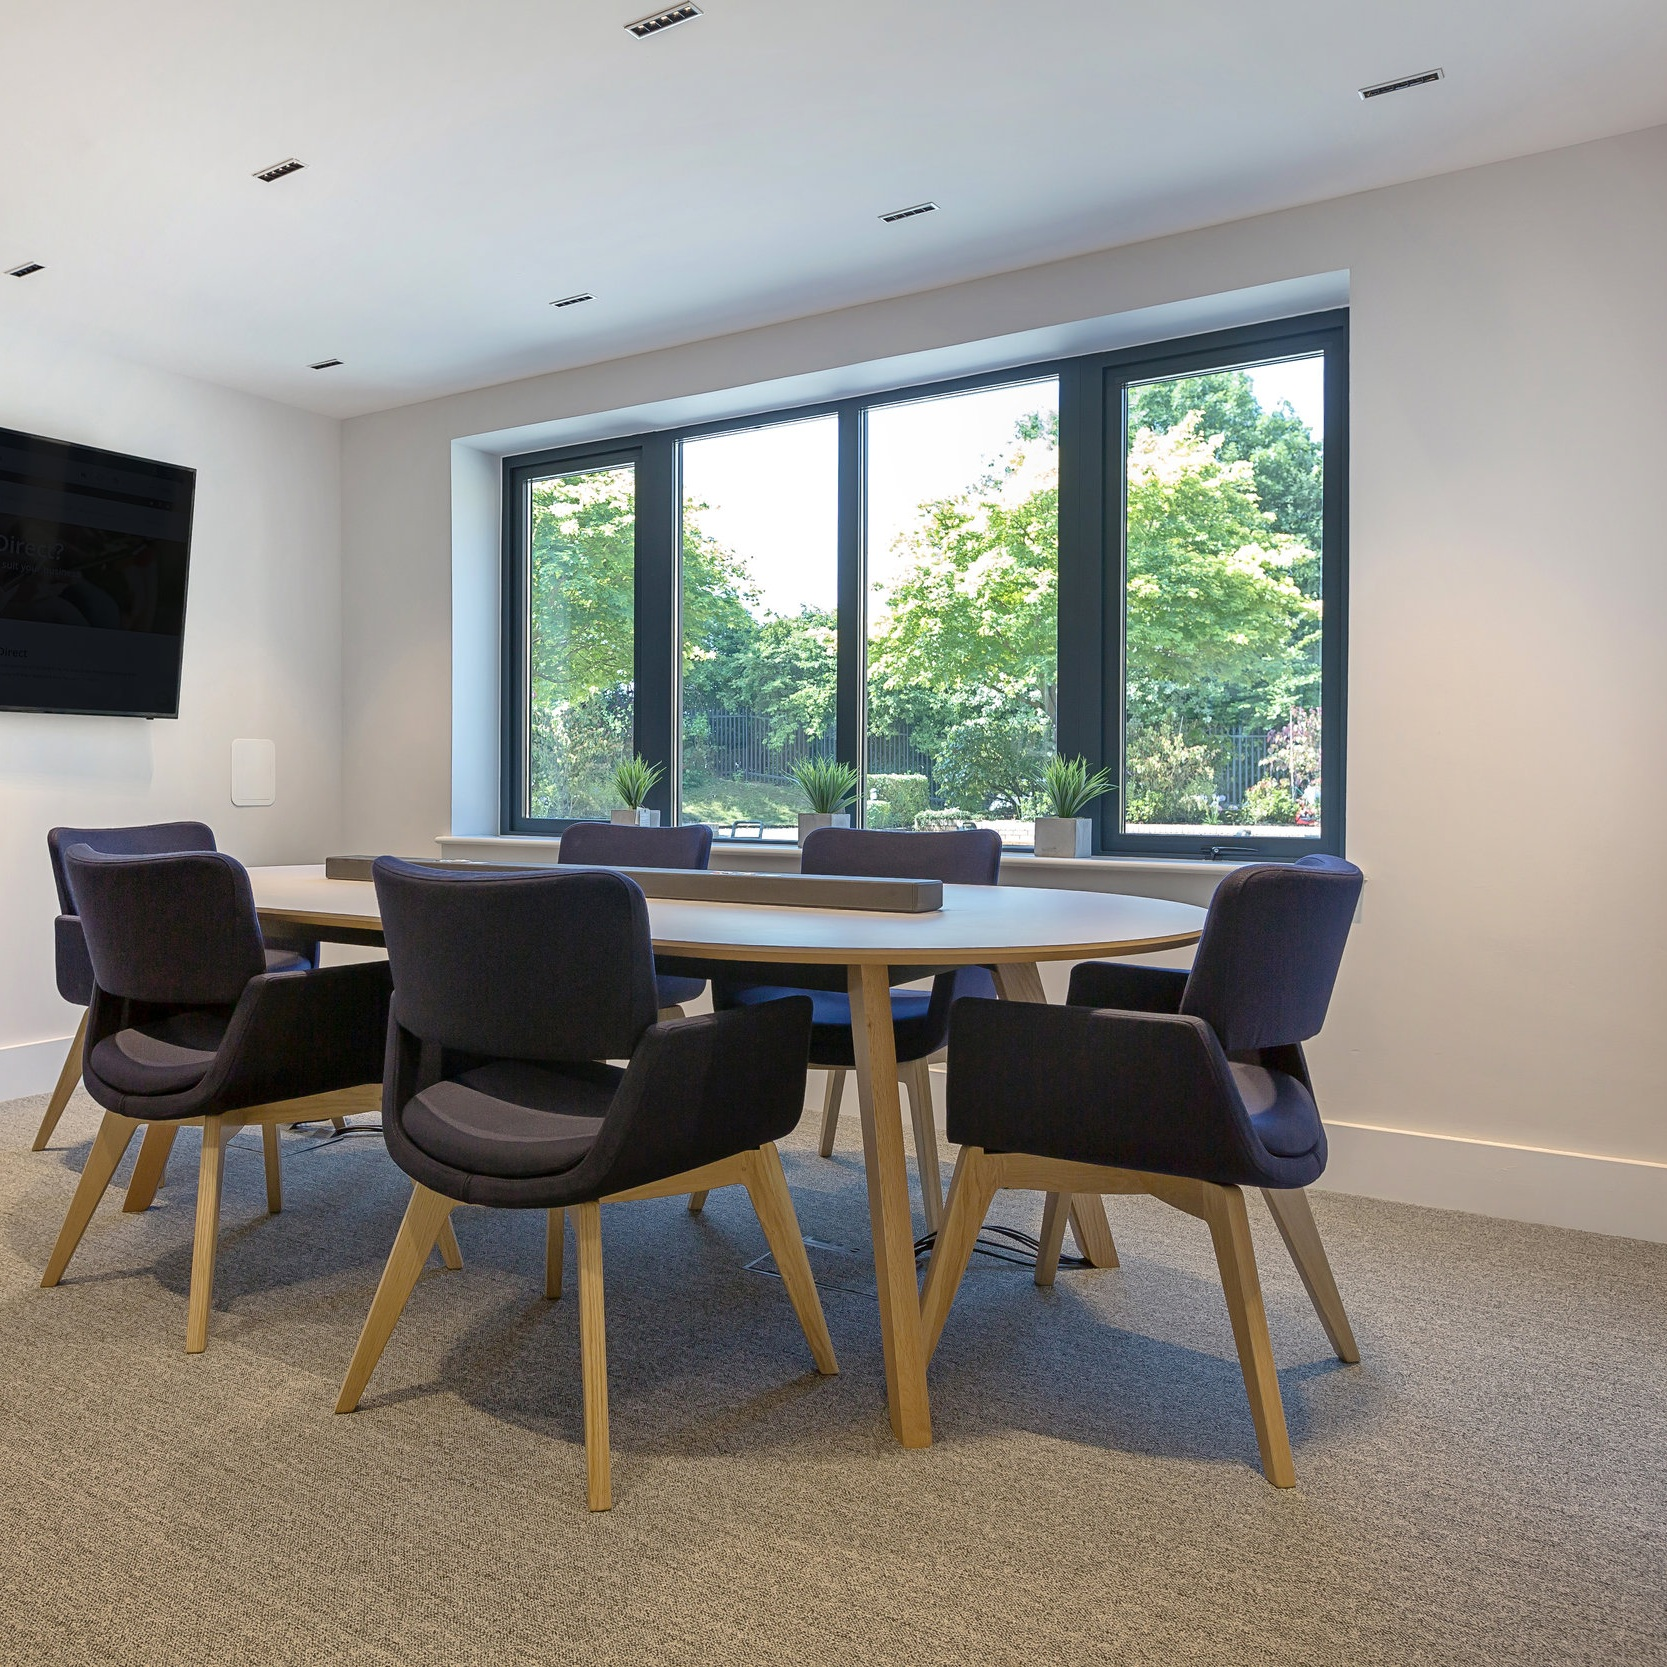 """ We felt the lighting was key in helping us underpin the design, but we also needed lighting that would work well within feature ceilings, with this in mind we wanted fittings that imitated the linear design throughout the scheme. "" - Hannah Wheeler - Spectrum Workplace."